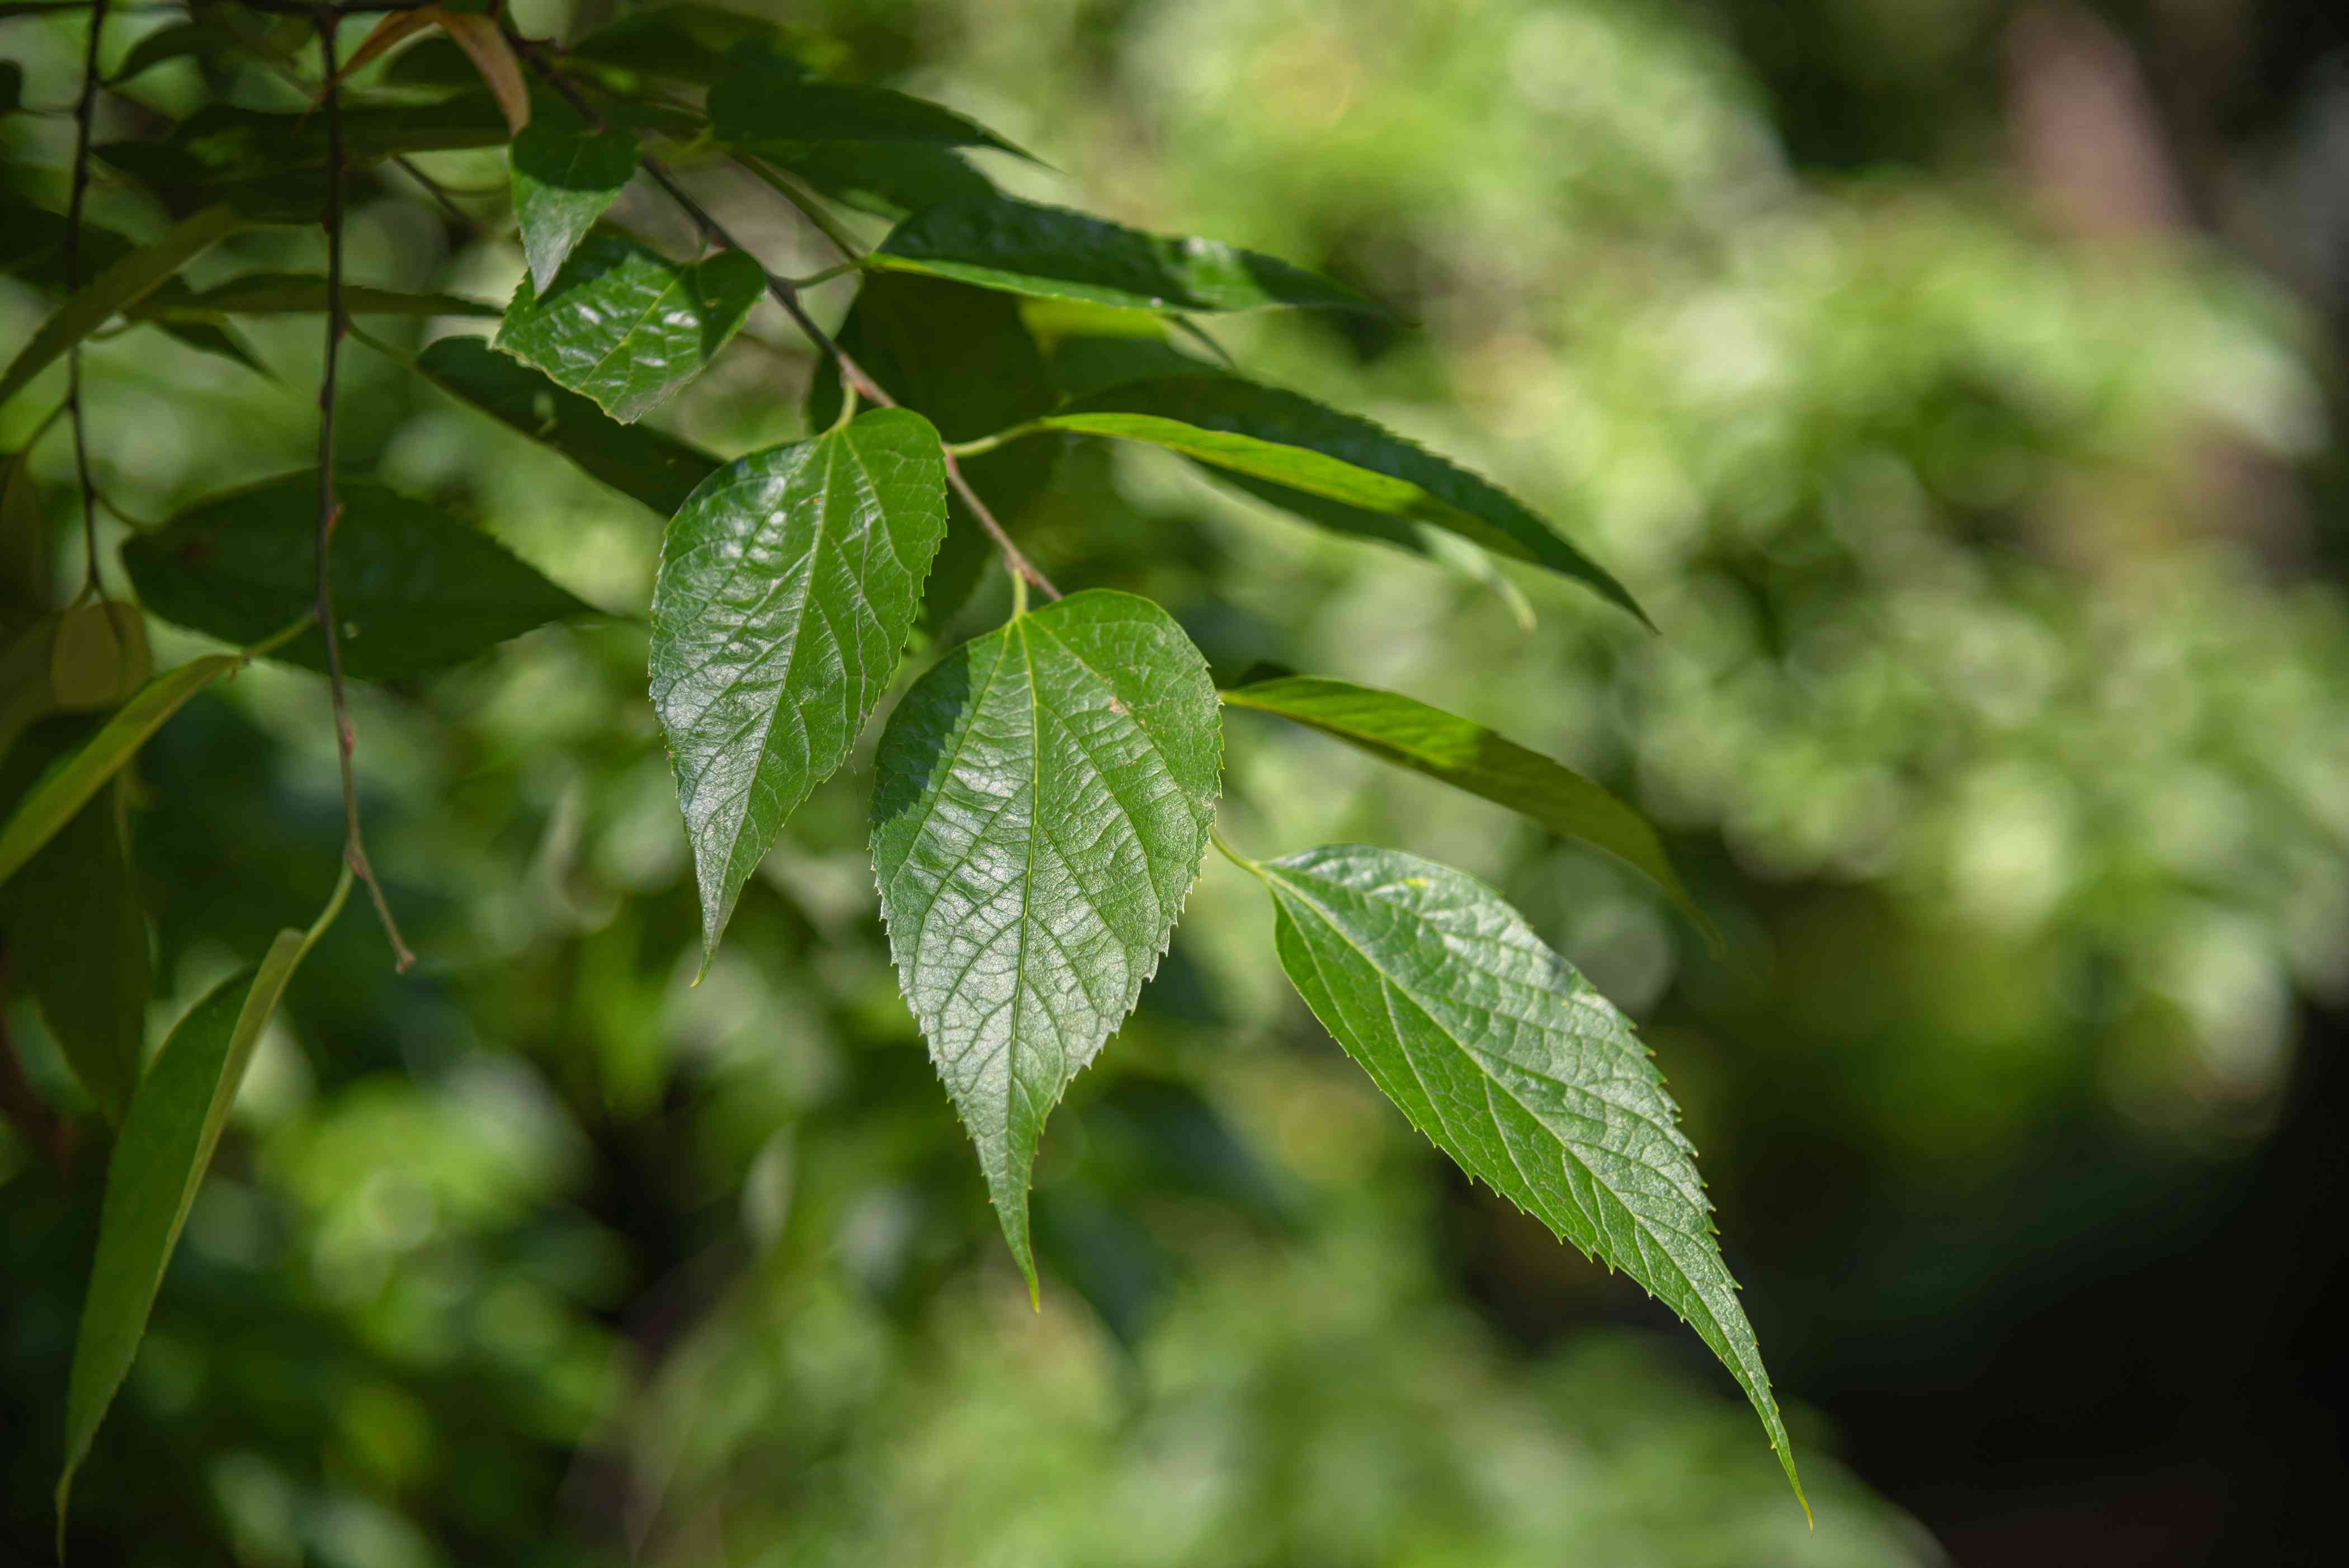 Hackberry tree branch with waxy green serrated leaves